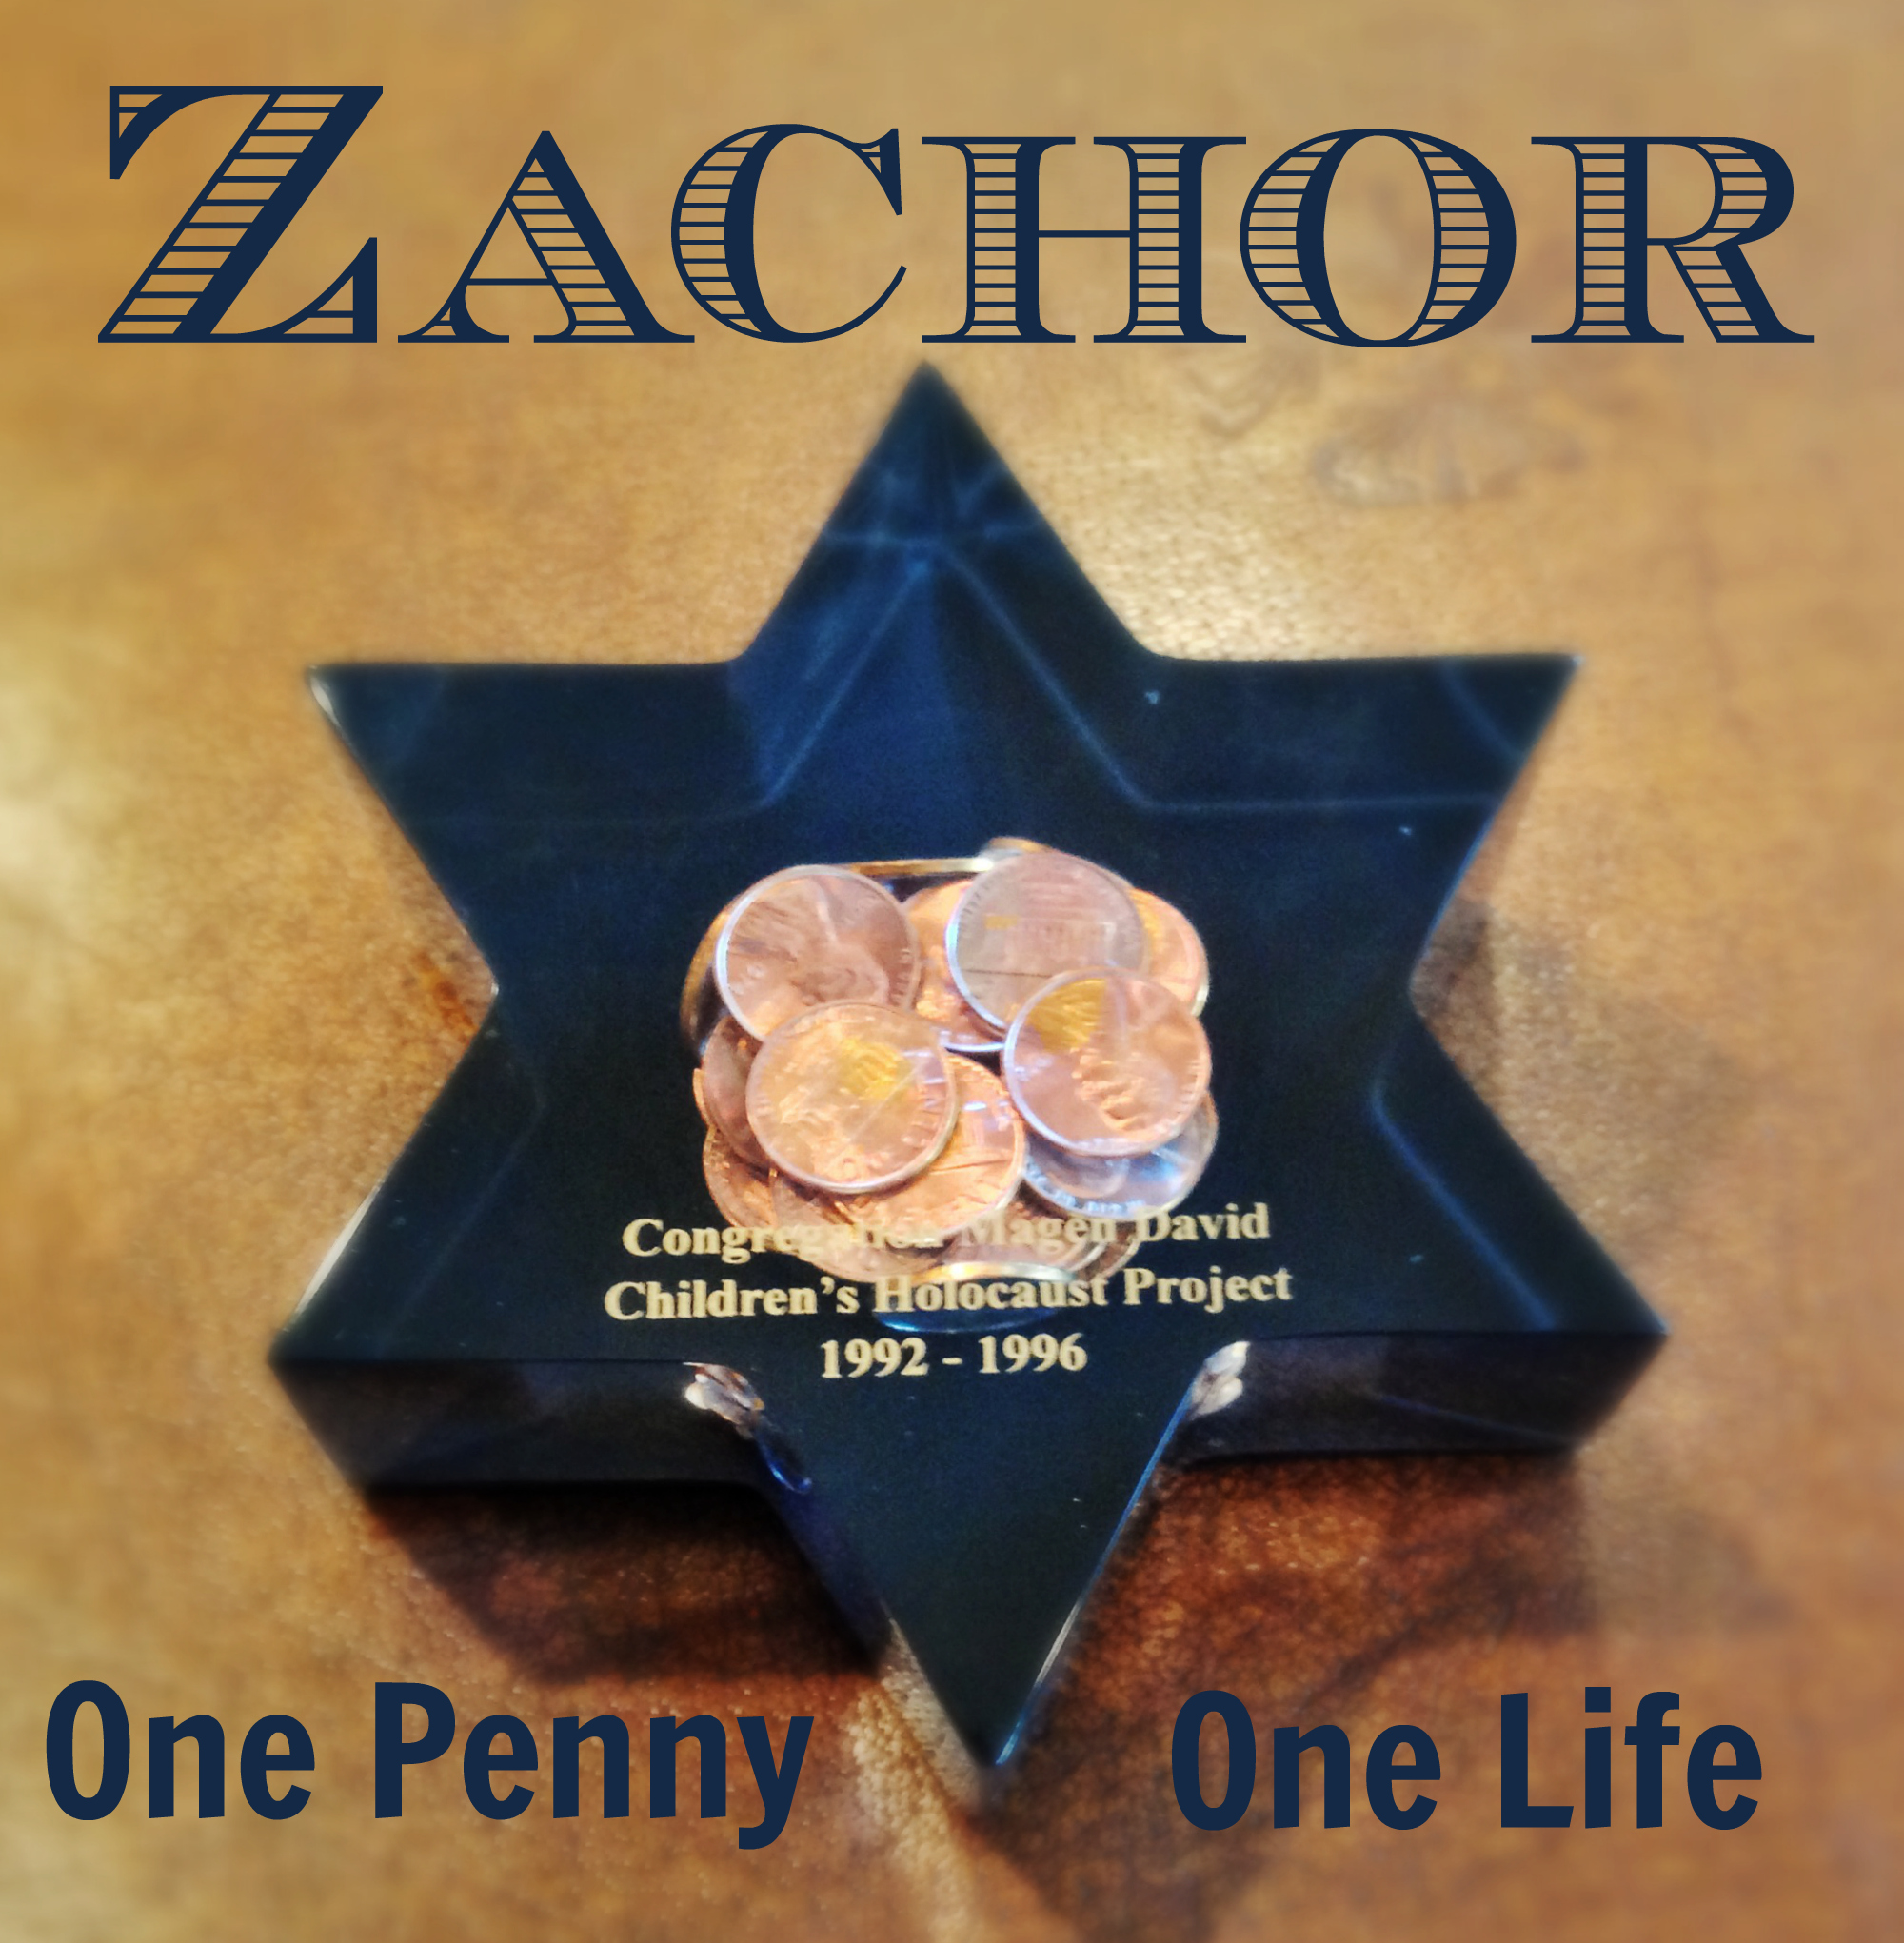 Rabbi Dr. Ezra Labaton Zachor Holocaust One Penny One Life Remembered